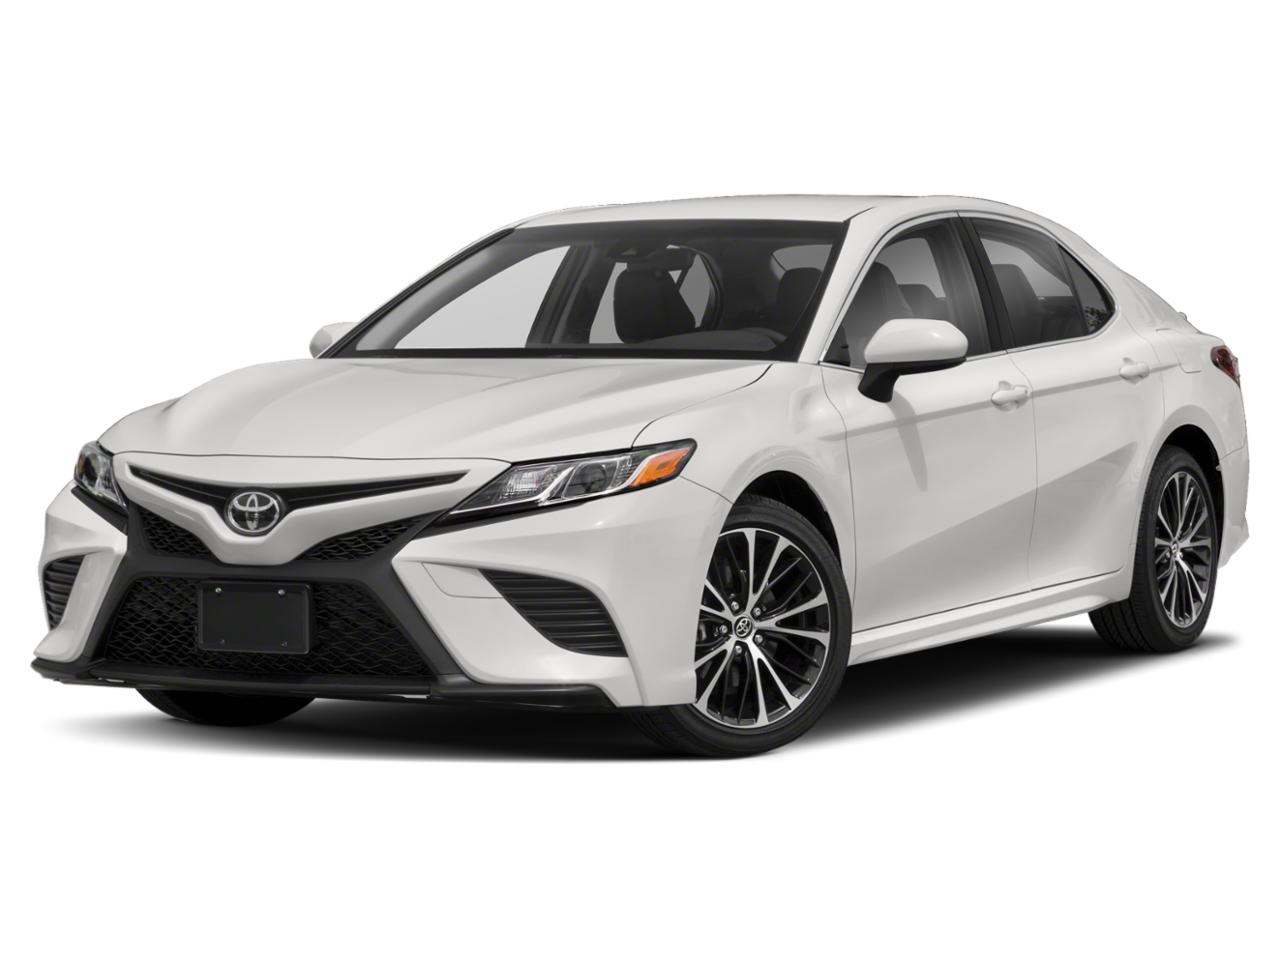 2019 Toyota Camry Vehicle Photo in MIDDLETON, WI 53562-1492